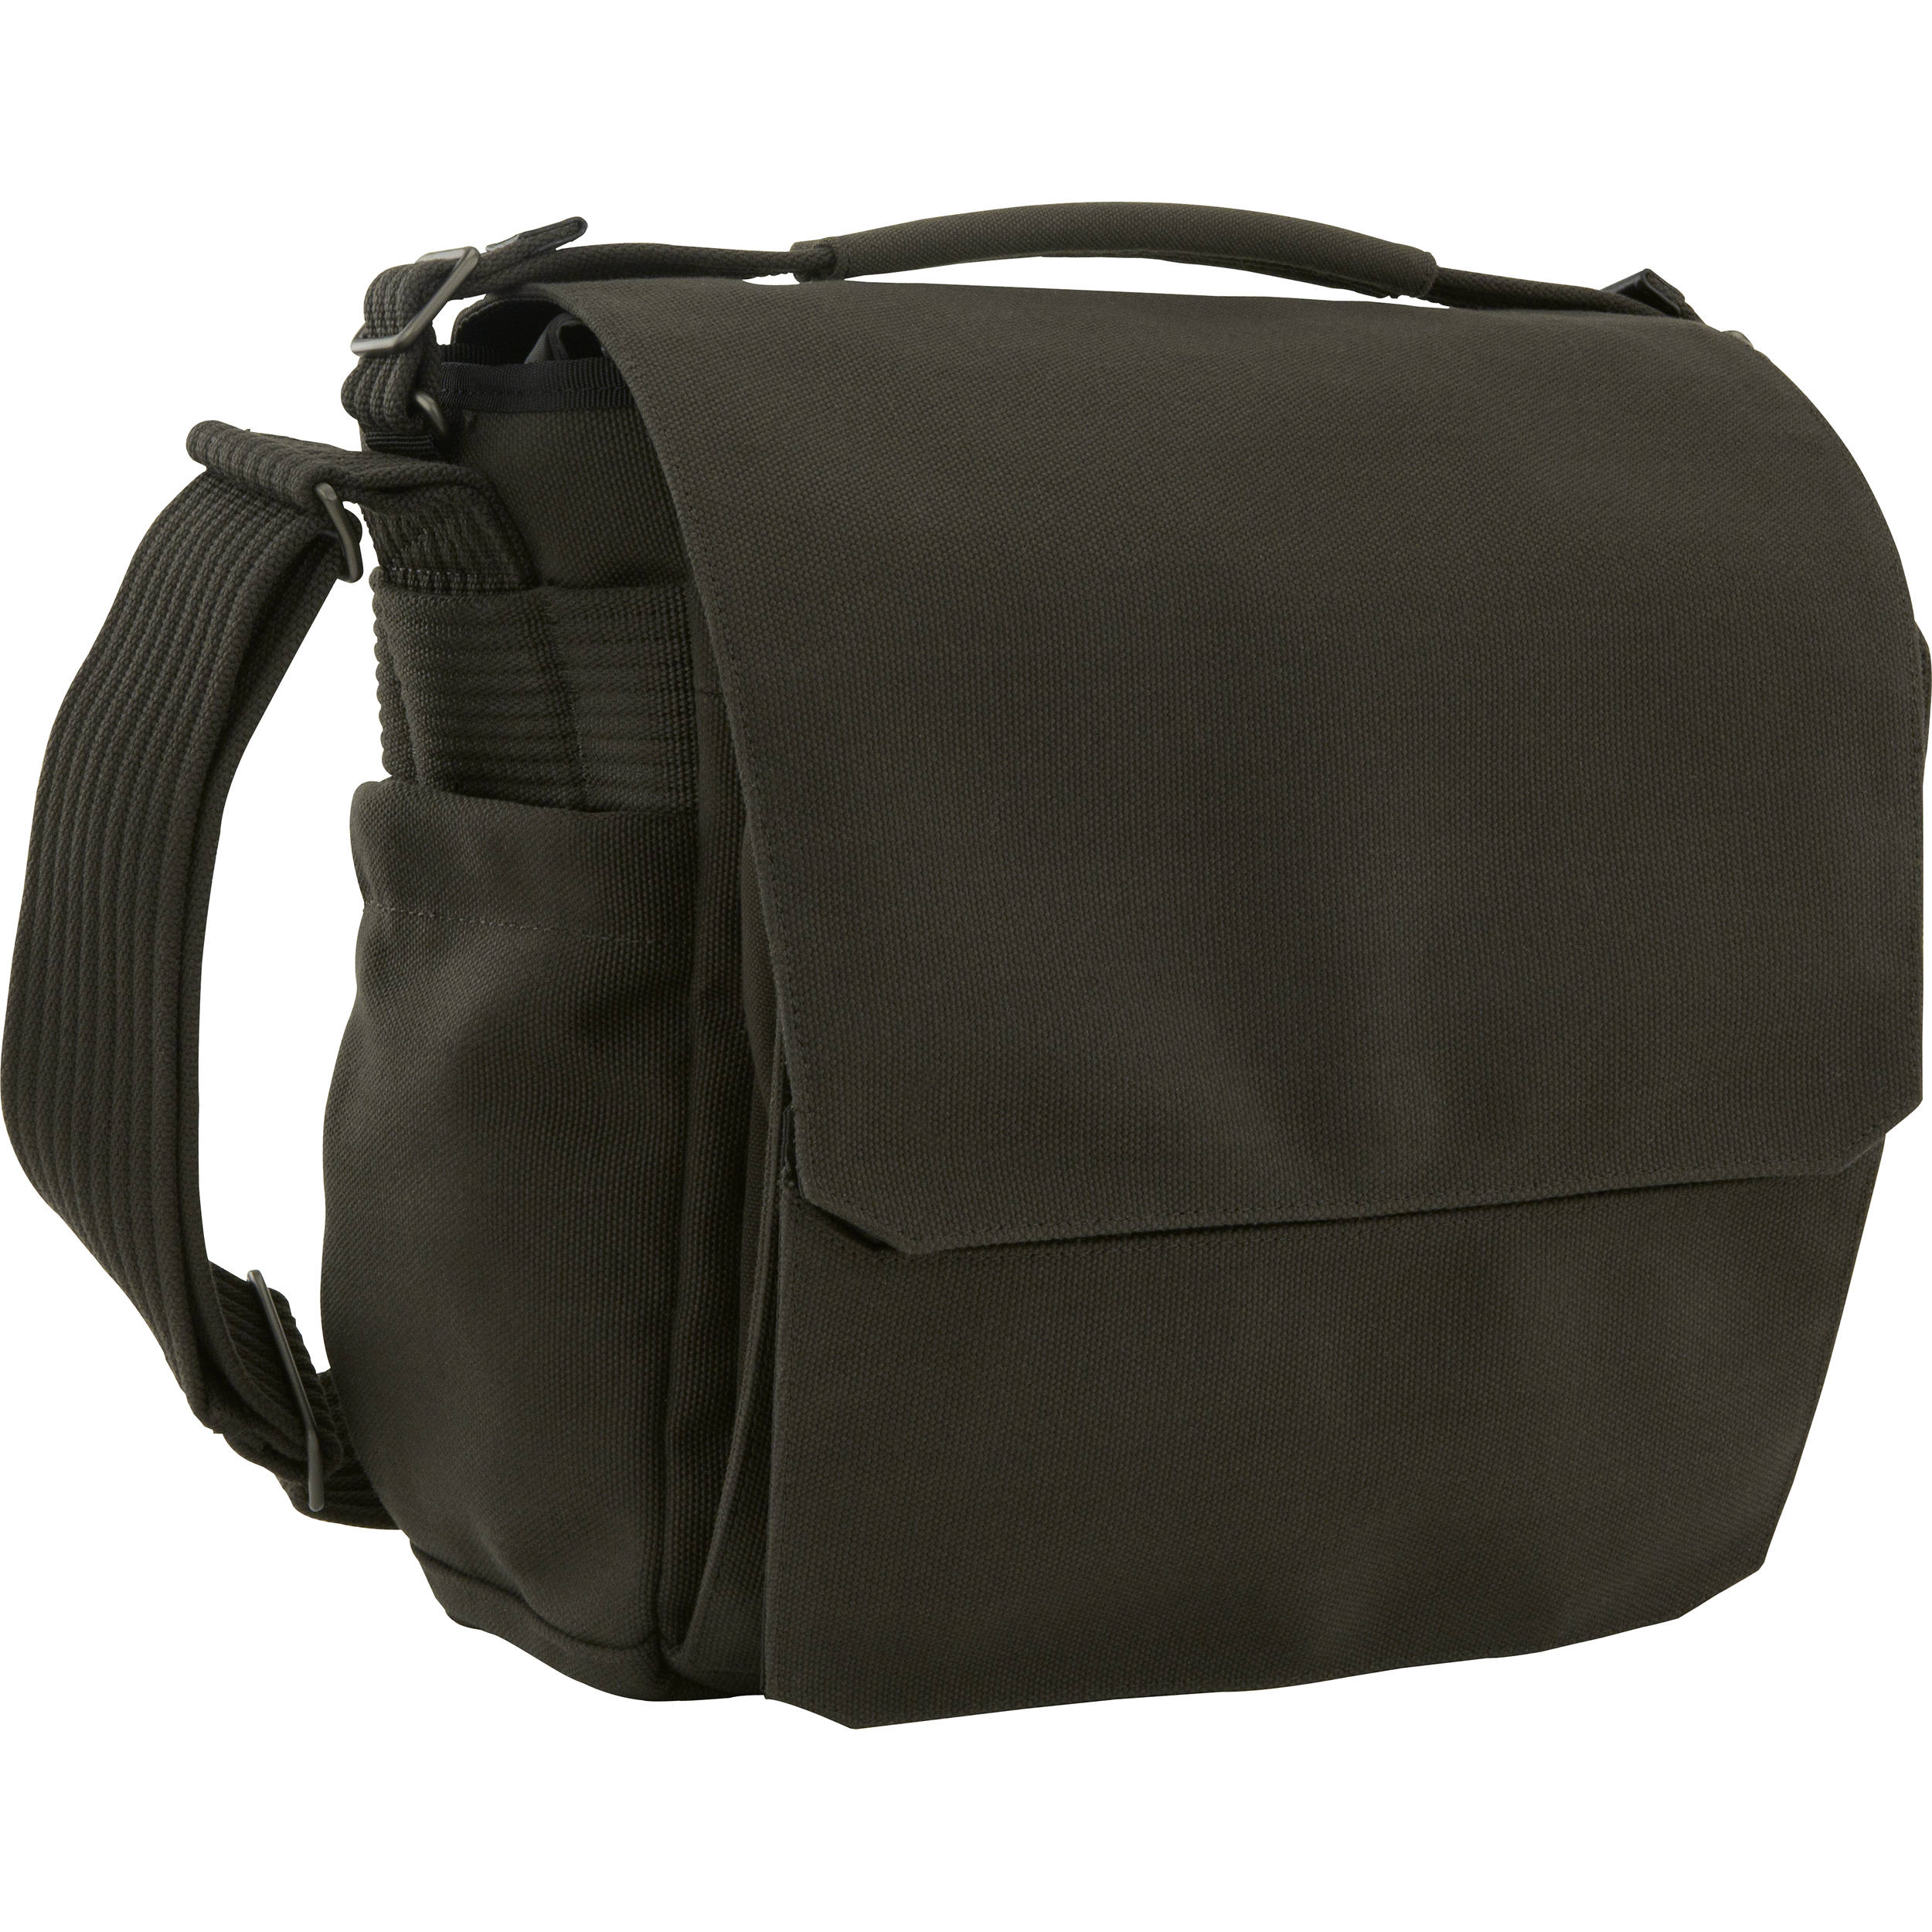 Lowepro Pro Messenger 180 Aw Shoulder Bag 13